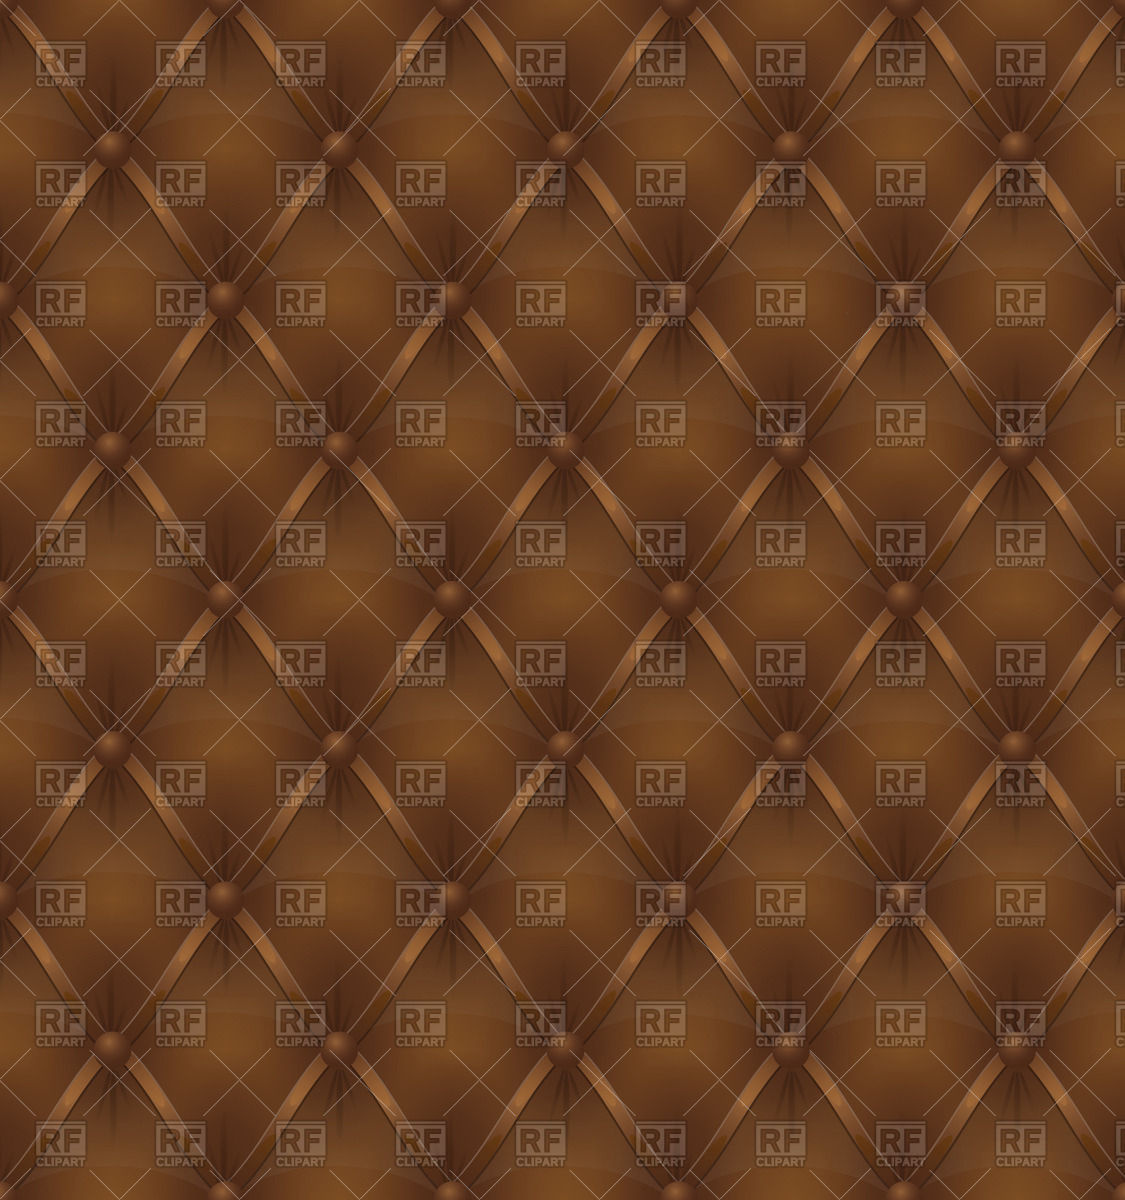 Seamless brown leather background Vector Image #66046.